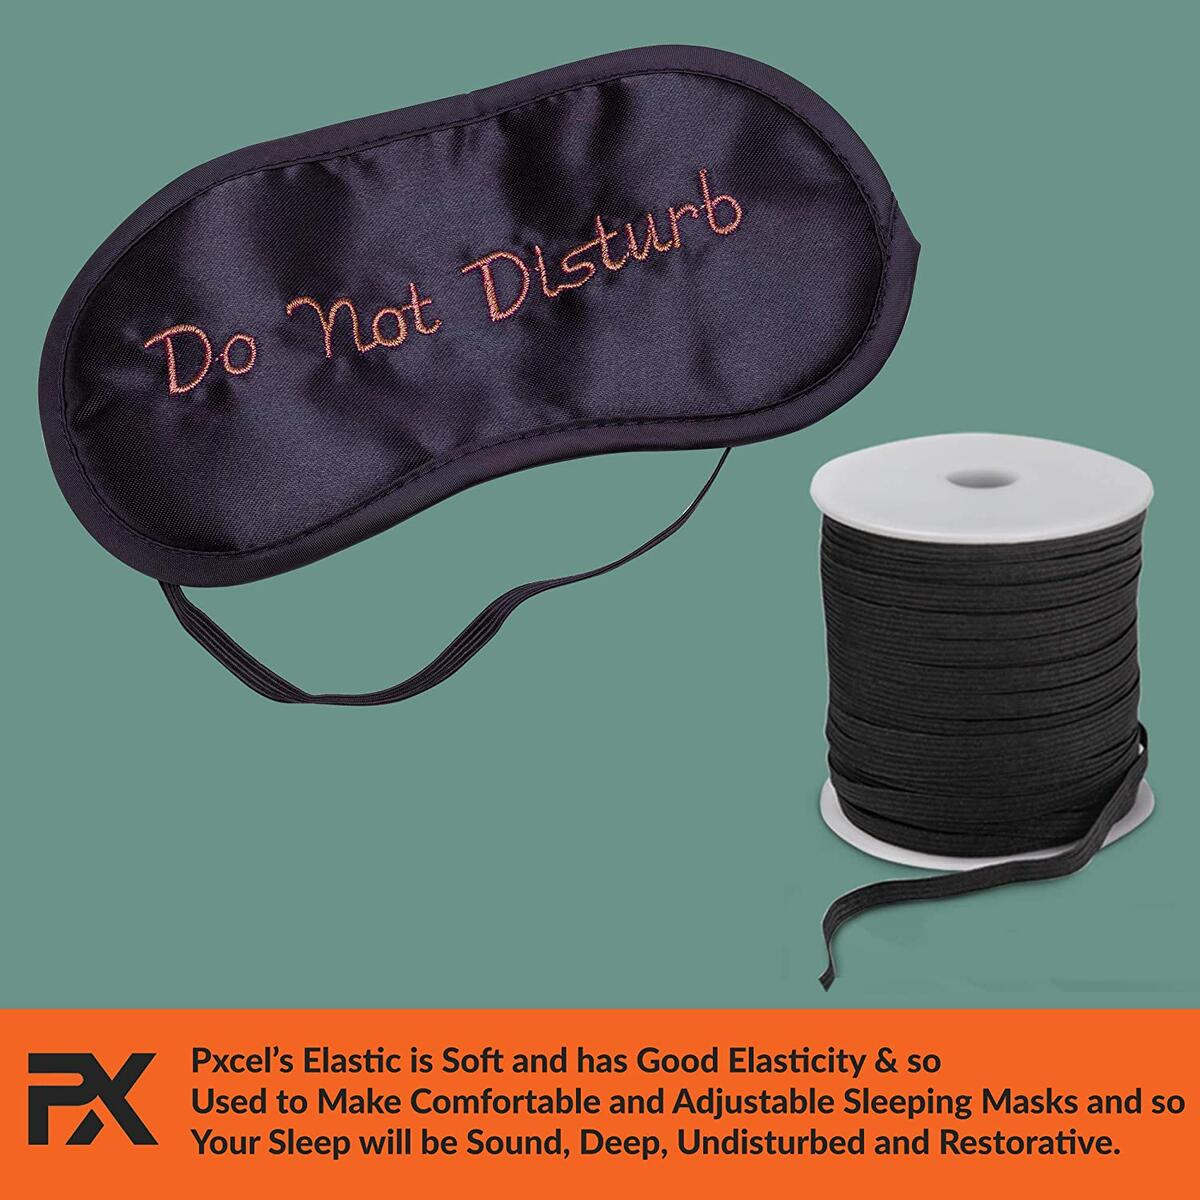 Elastic Band String Cord Braided for Sewing Comfortable Masks & DIY Crafts by Pxcel, 75 Yards, Black with High Elasticity 1/4 Inch Wide in Sturdy Plastic Spool